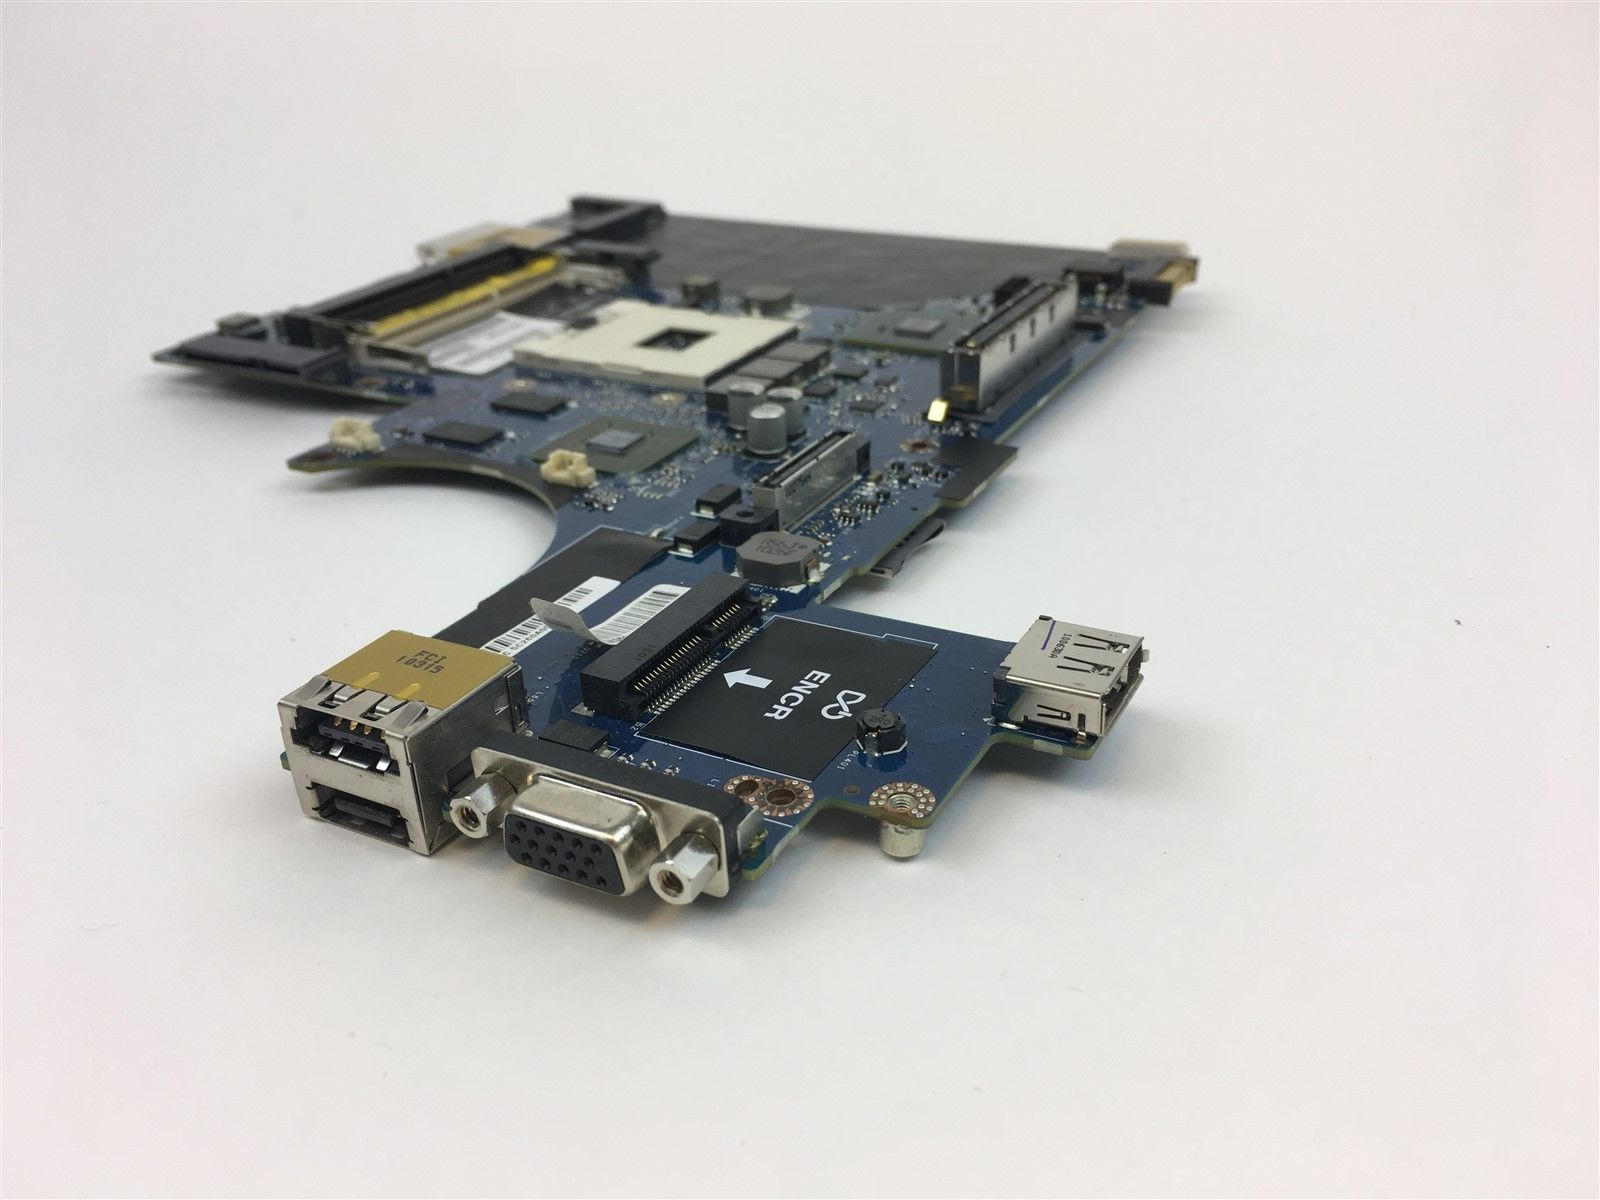 Vr Assets Dell Latitude E6410 Laptop Motherboard Yh39c 0yh39c